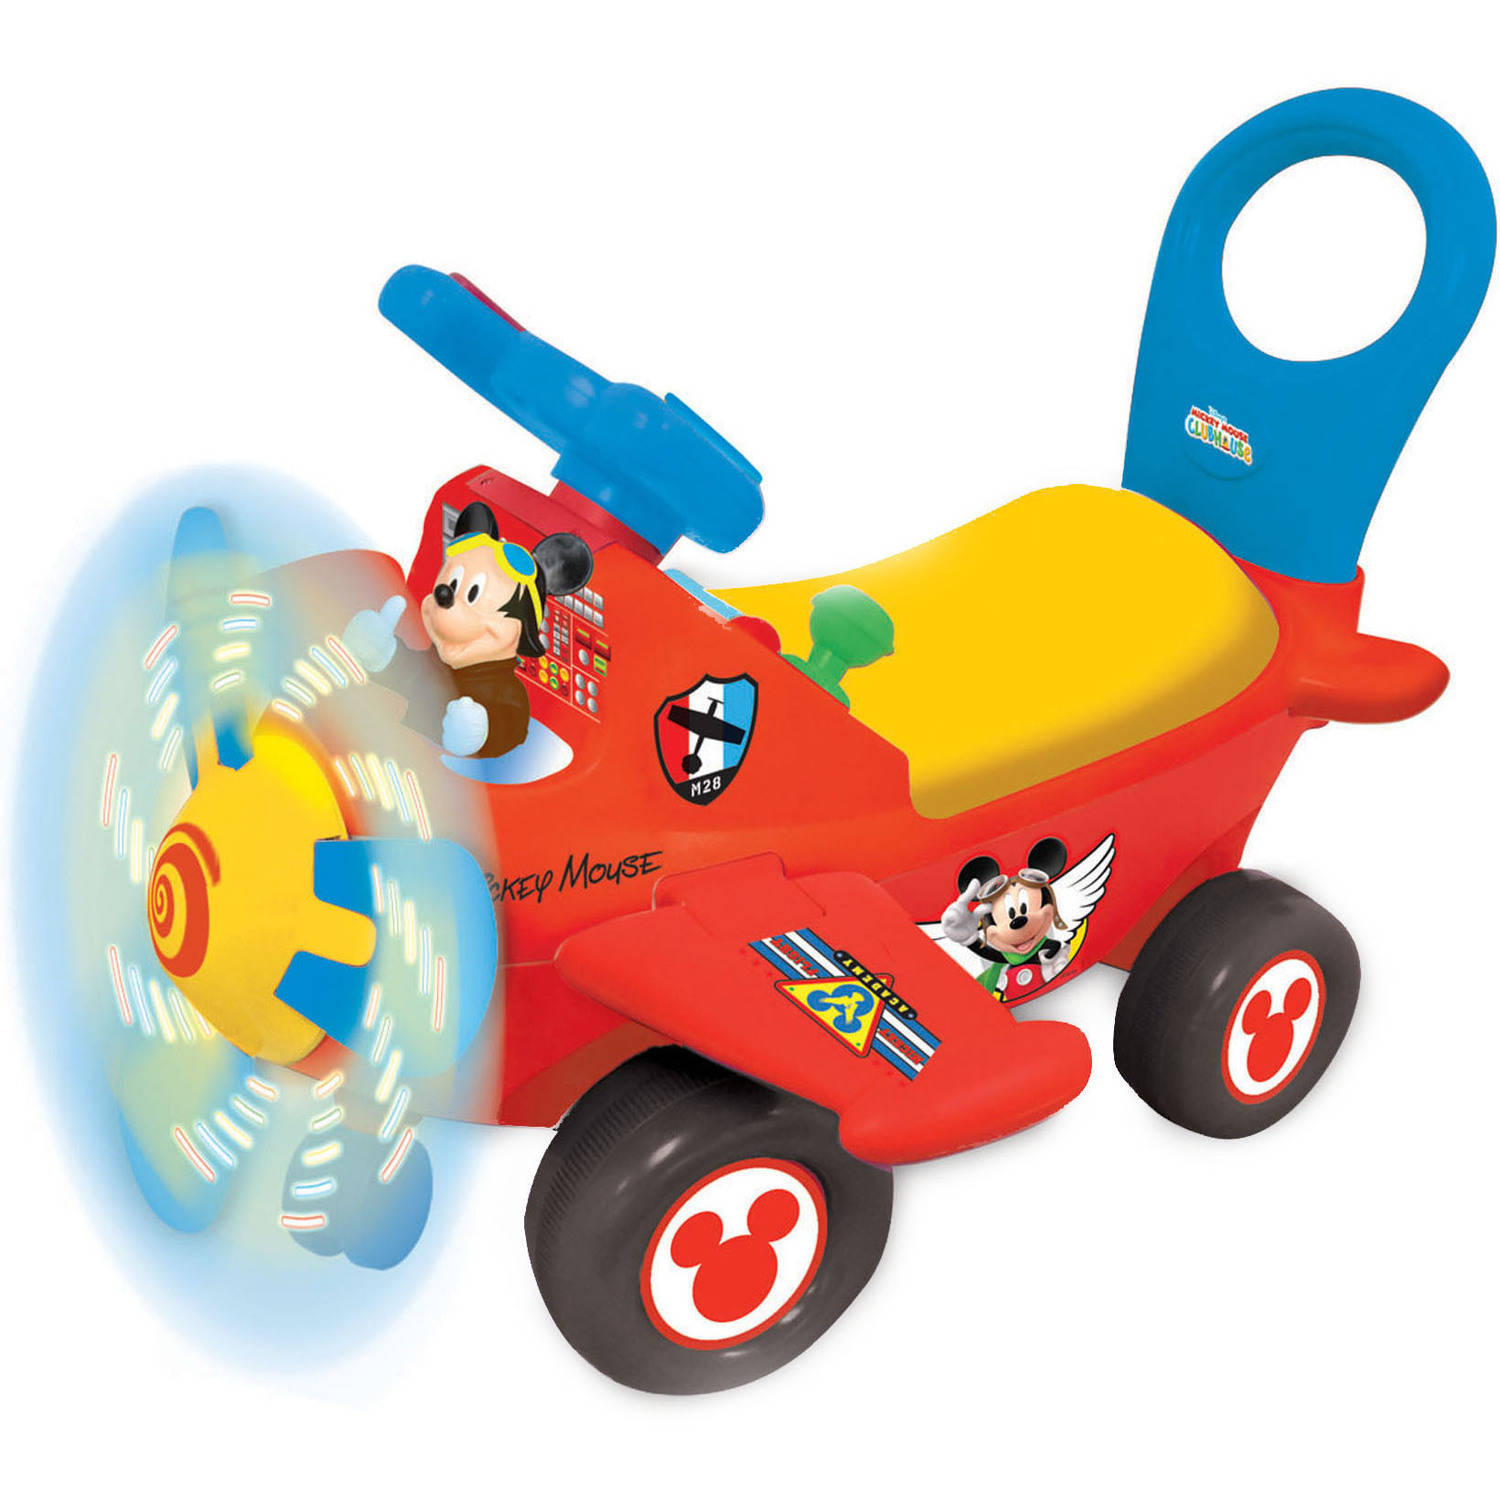 Kiddieland Disney Mickey Mouse Clubhouse Plane Light and Sound Activity Ride-On by Kiddieland